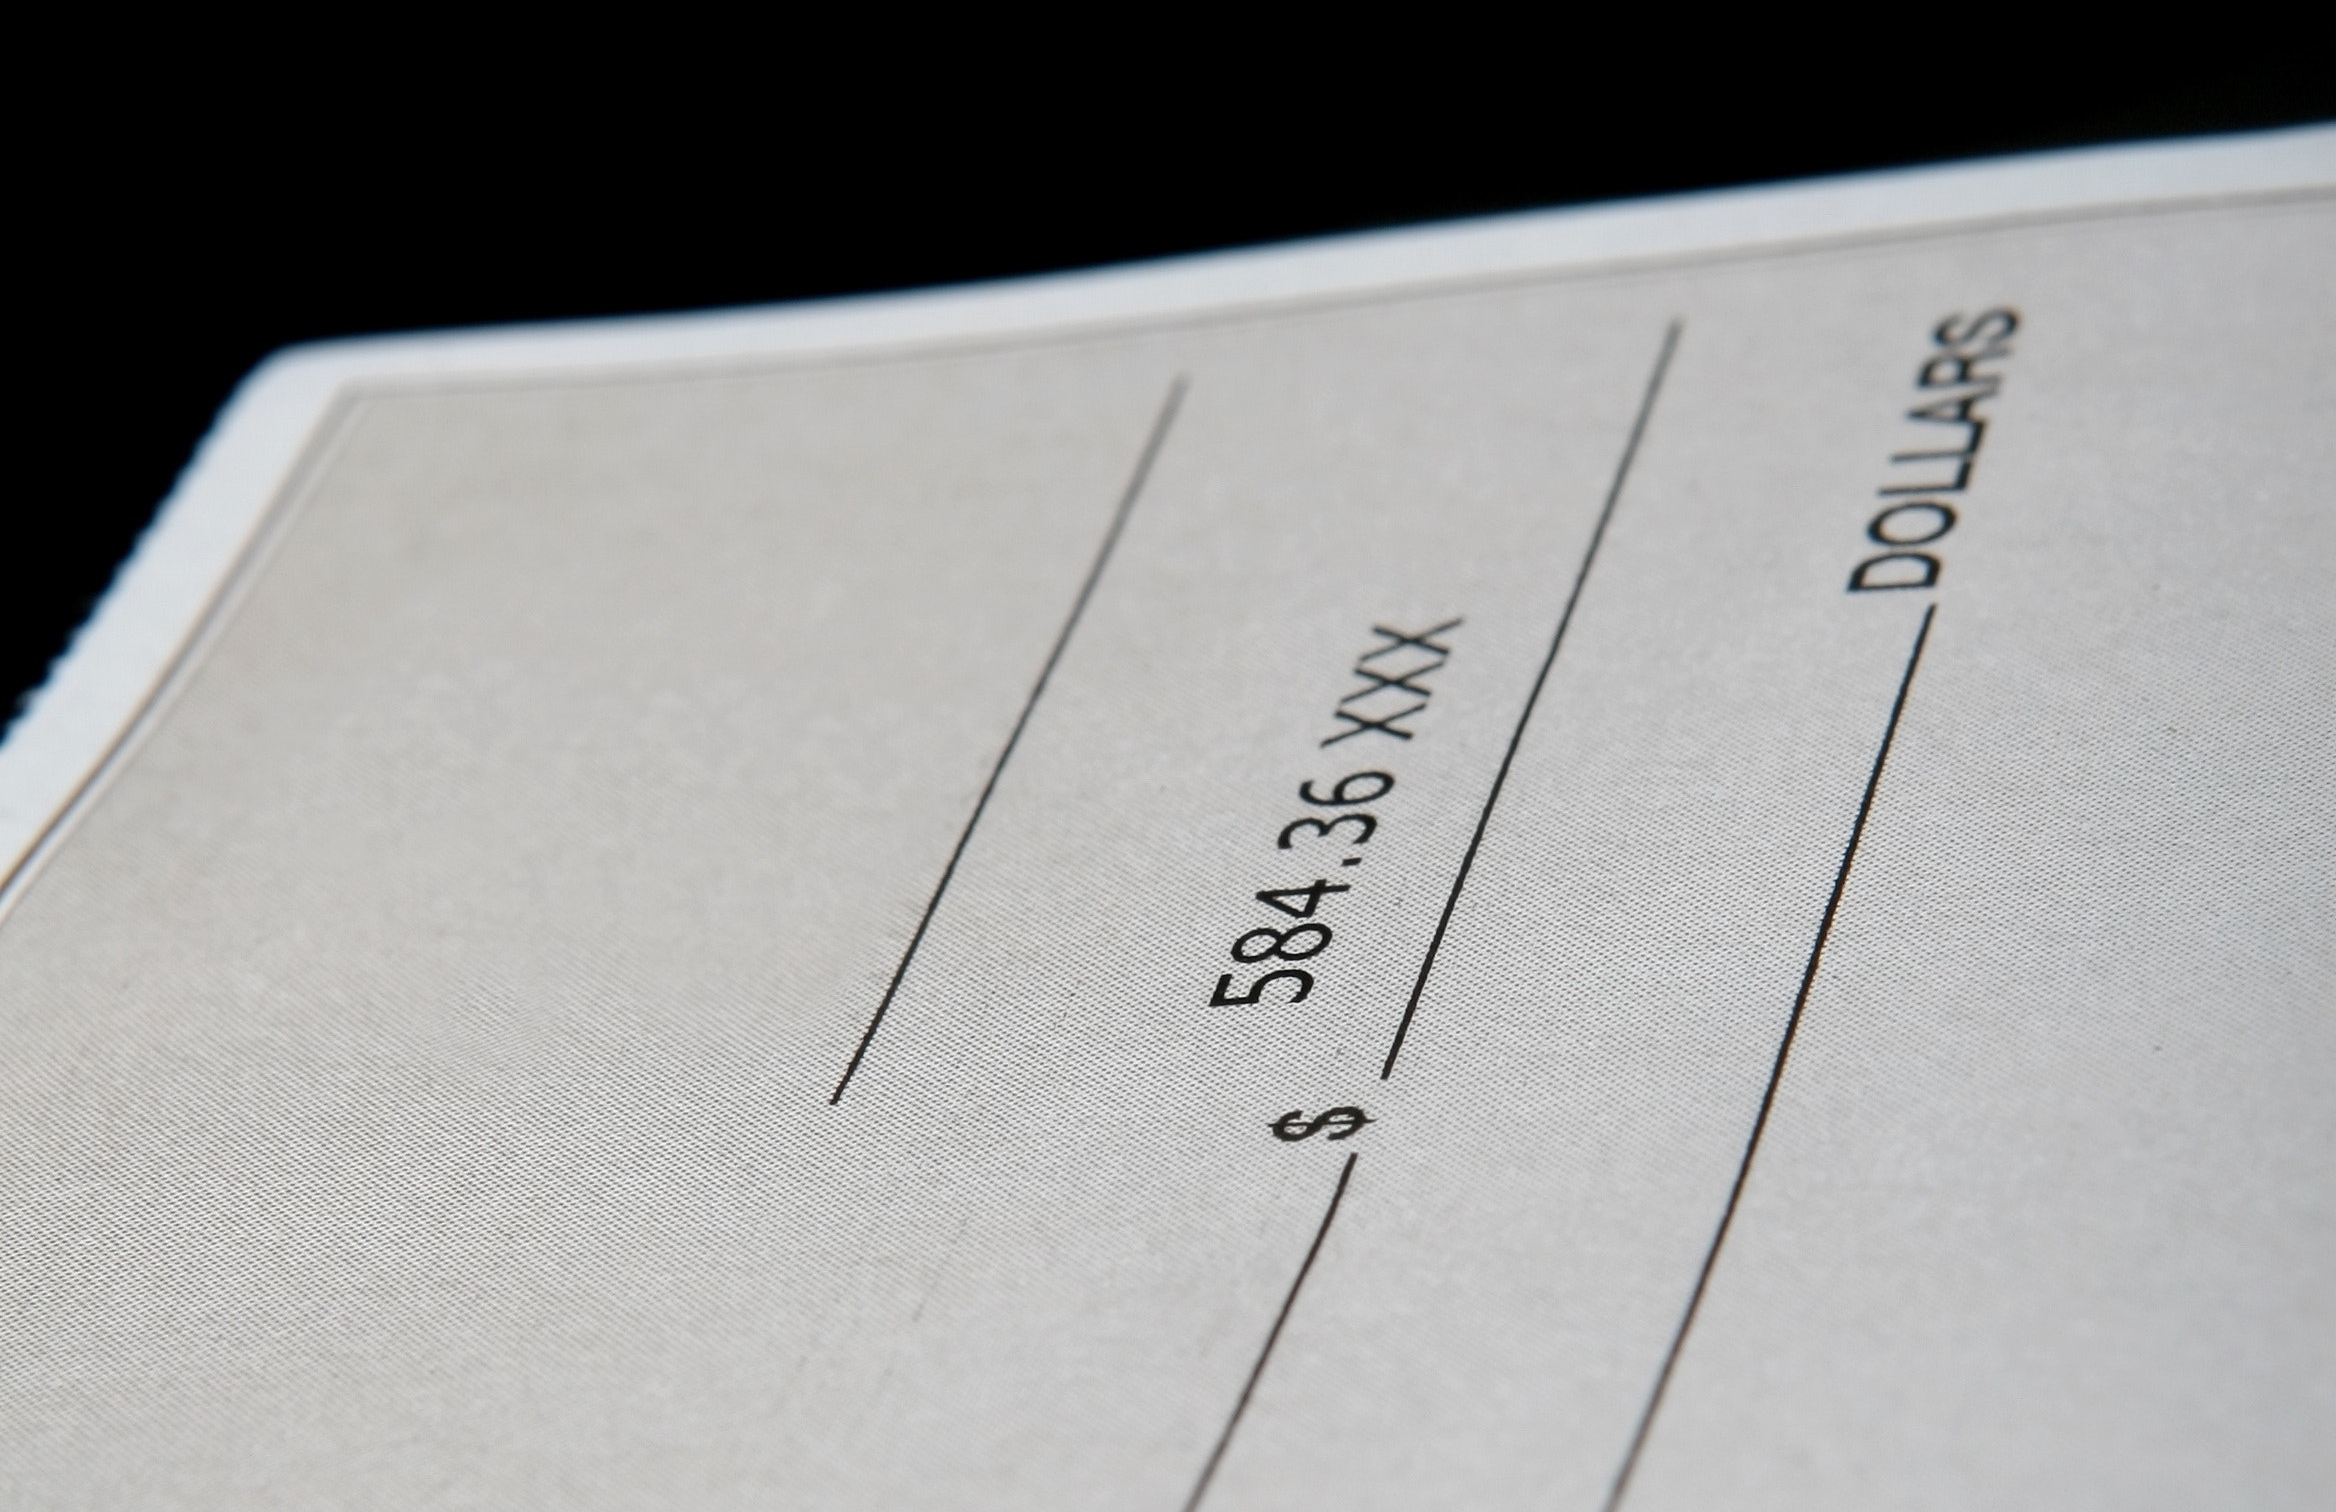 black-and-white-check-cheque-259226.jpg